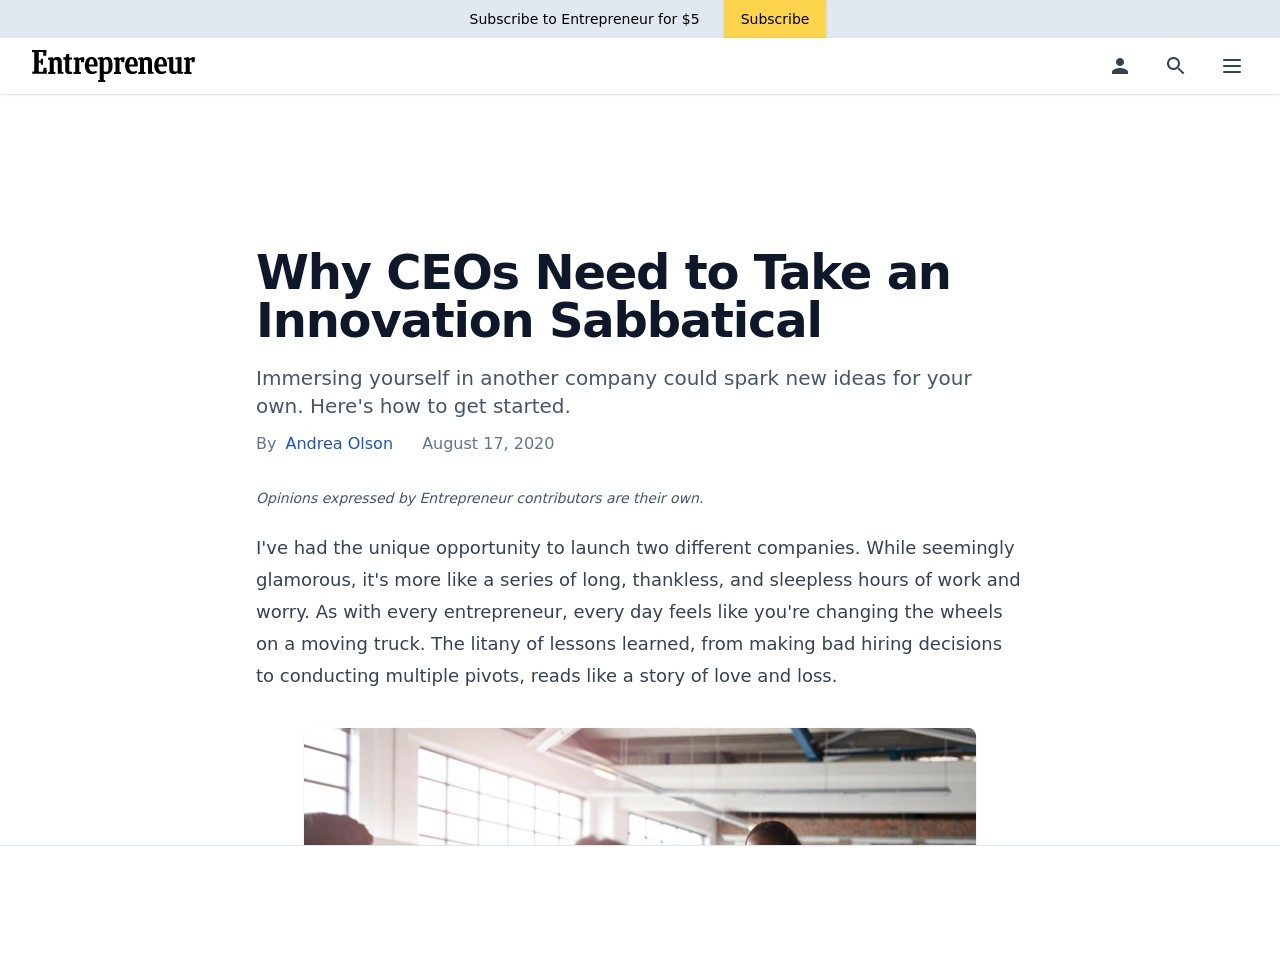 Why CEOs Need to Take an Innovation Sabbatical